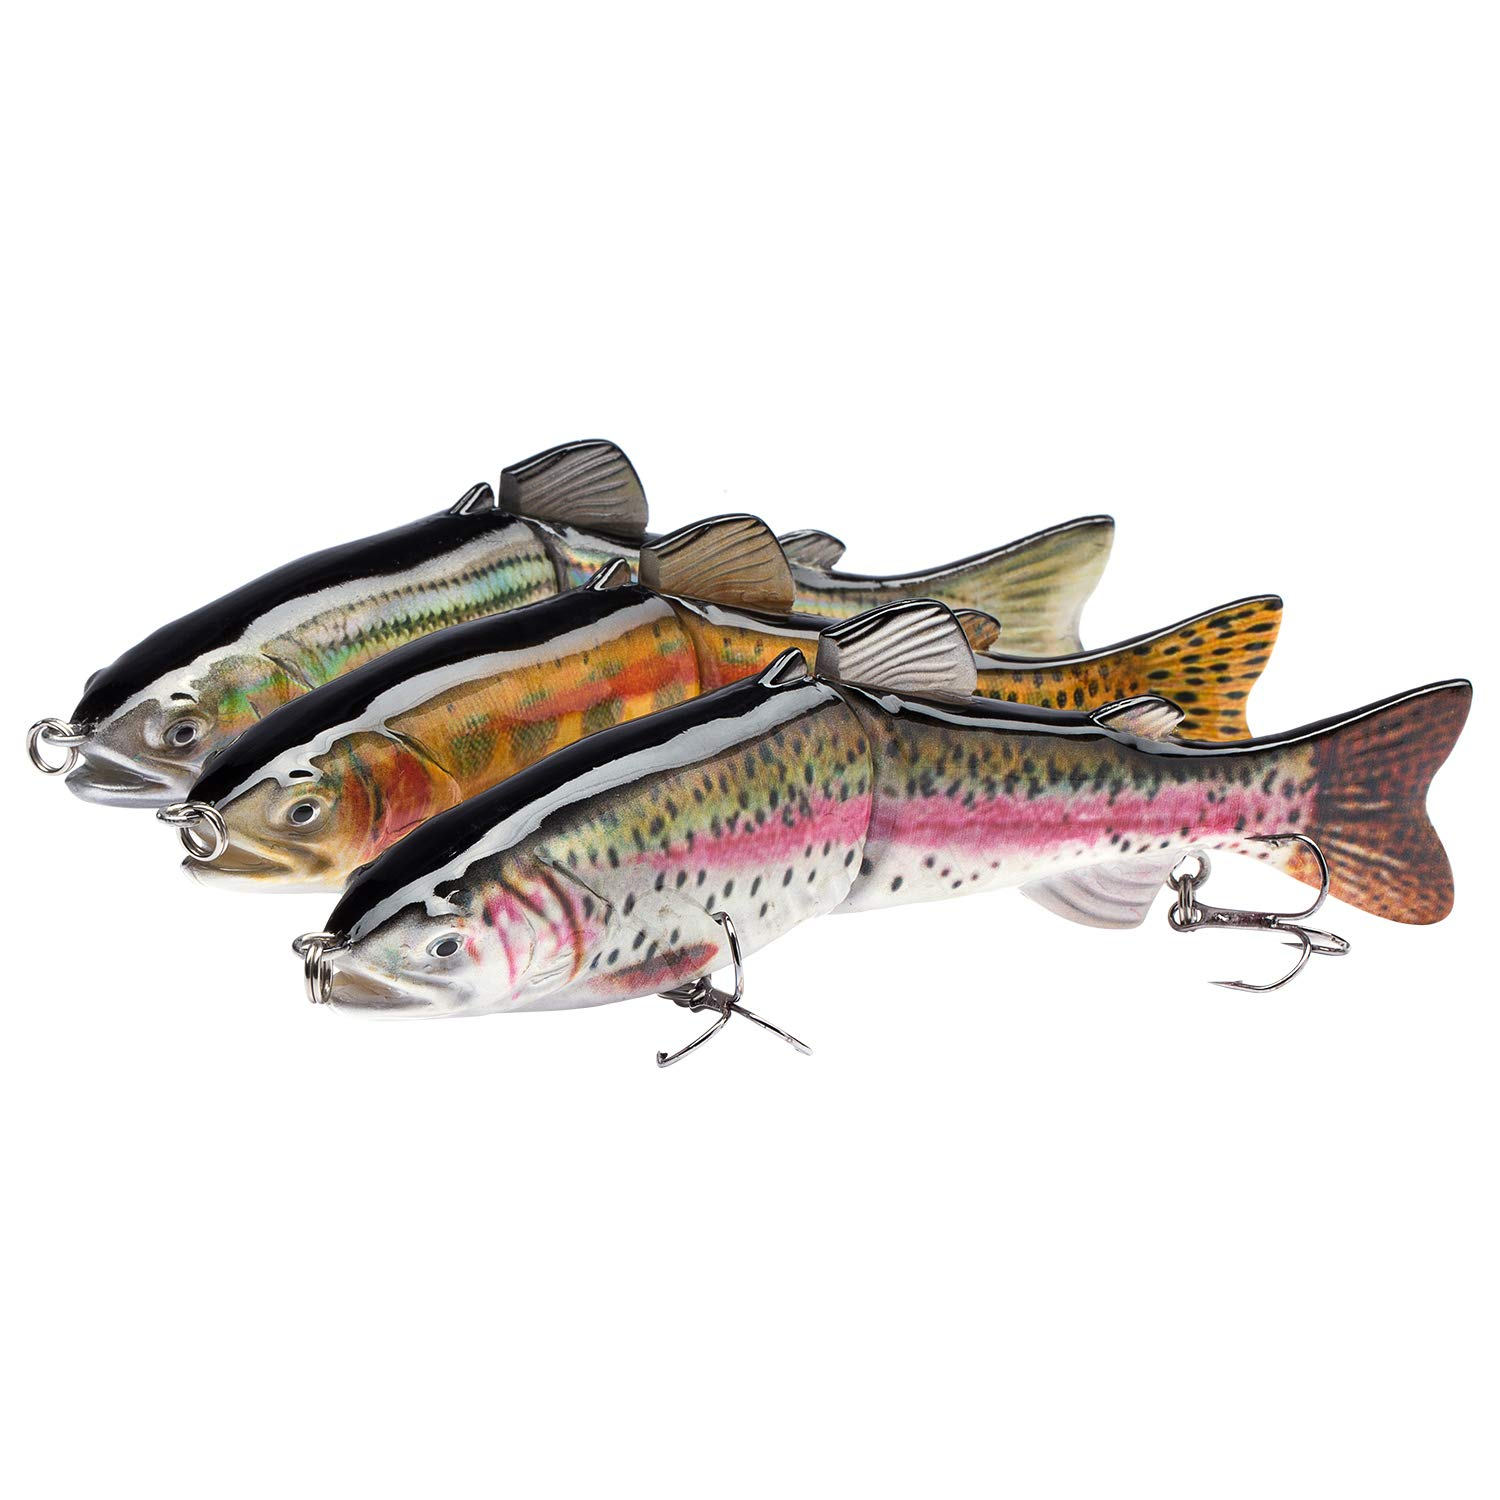 Bassdash Swimpike Multi Jointed Swimbaits Bass Fishing Lure Hard Body Soft Fins 8'' 2-1/2oz, 6 Colors, (SwimTrout - 7.2in/2.3oz - Pack of 3)